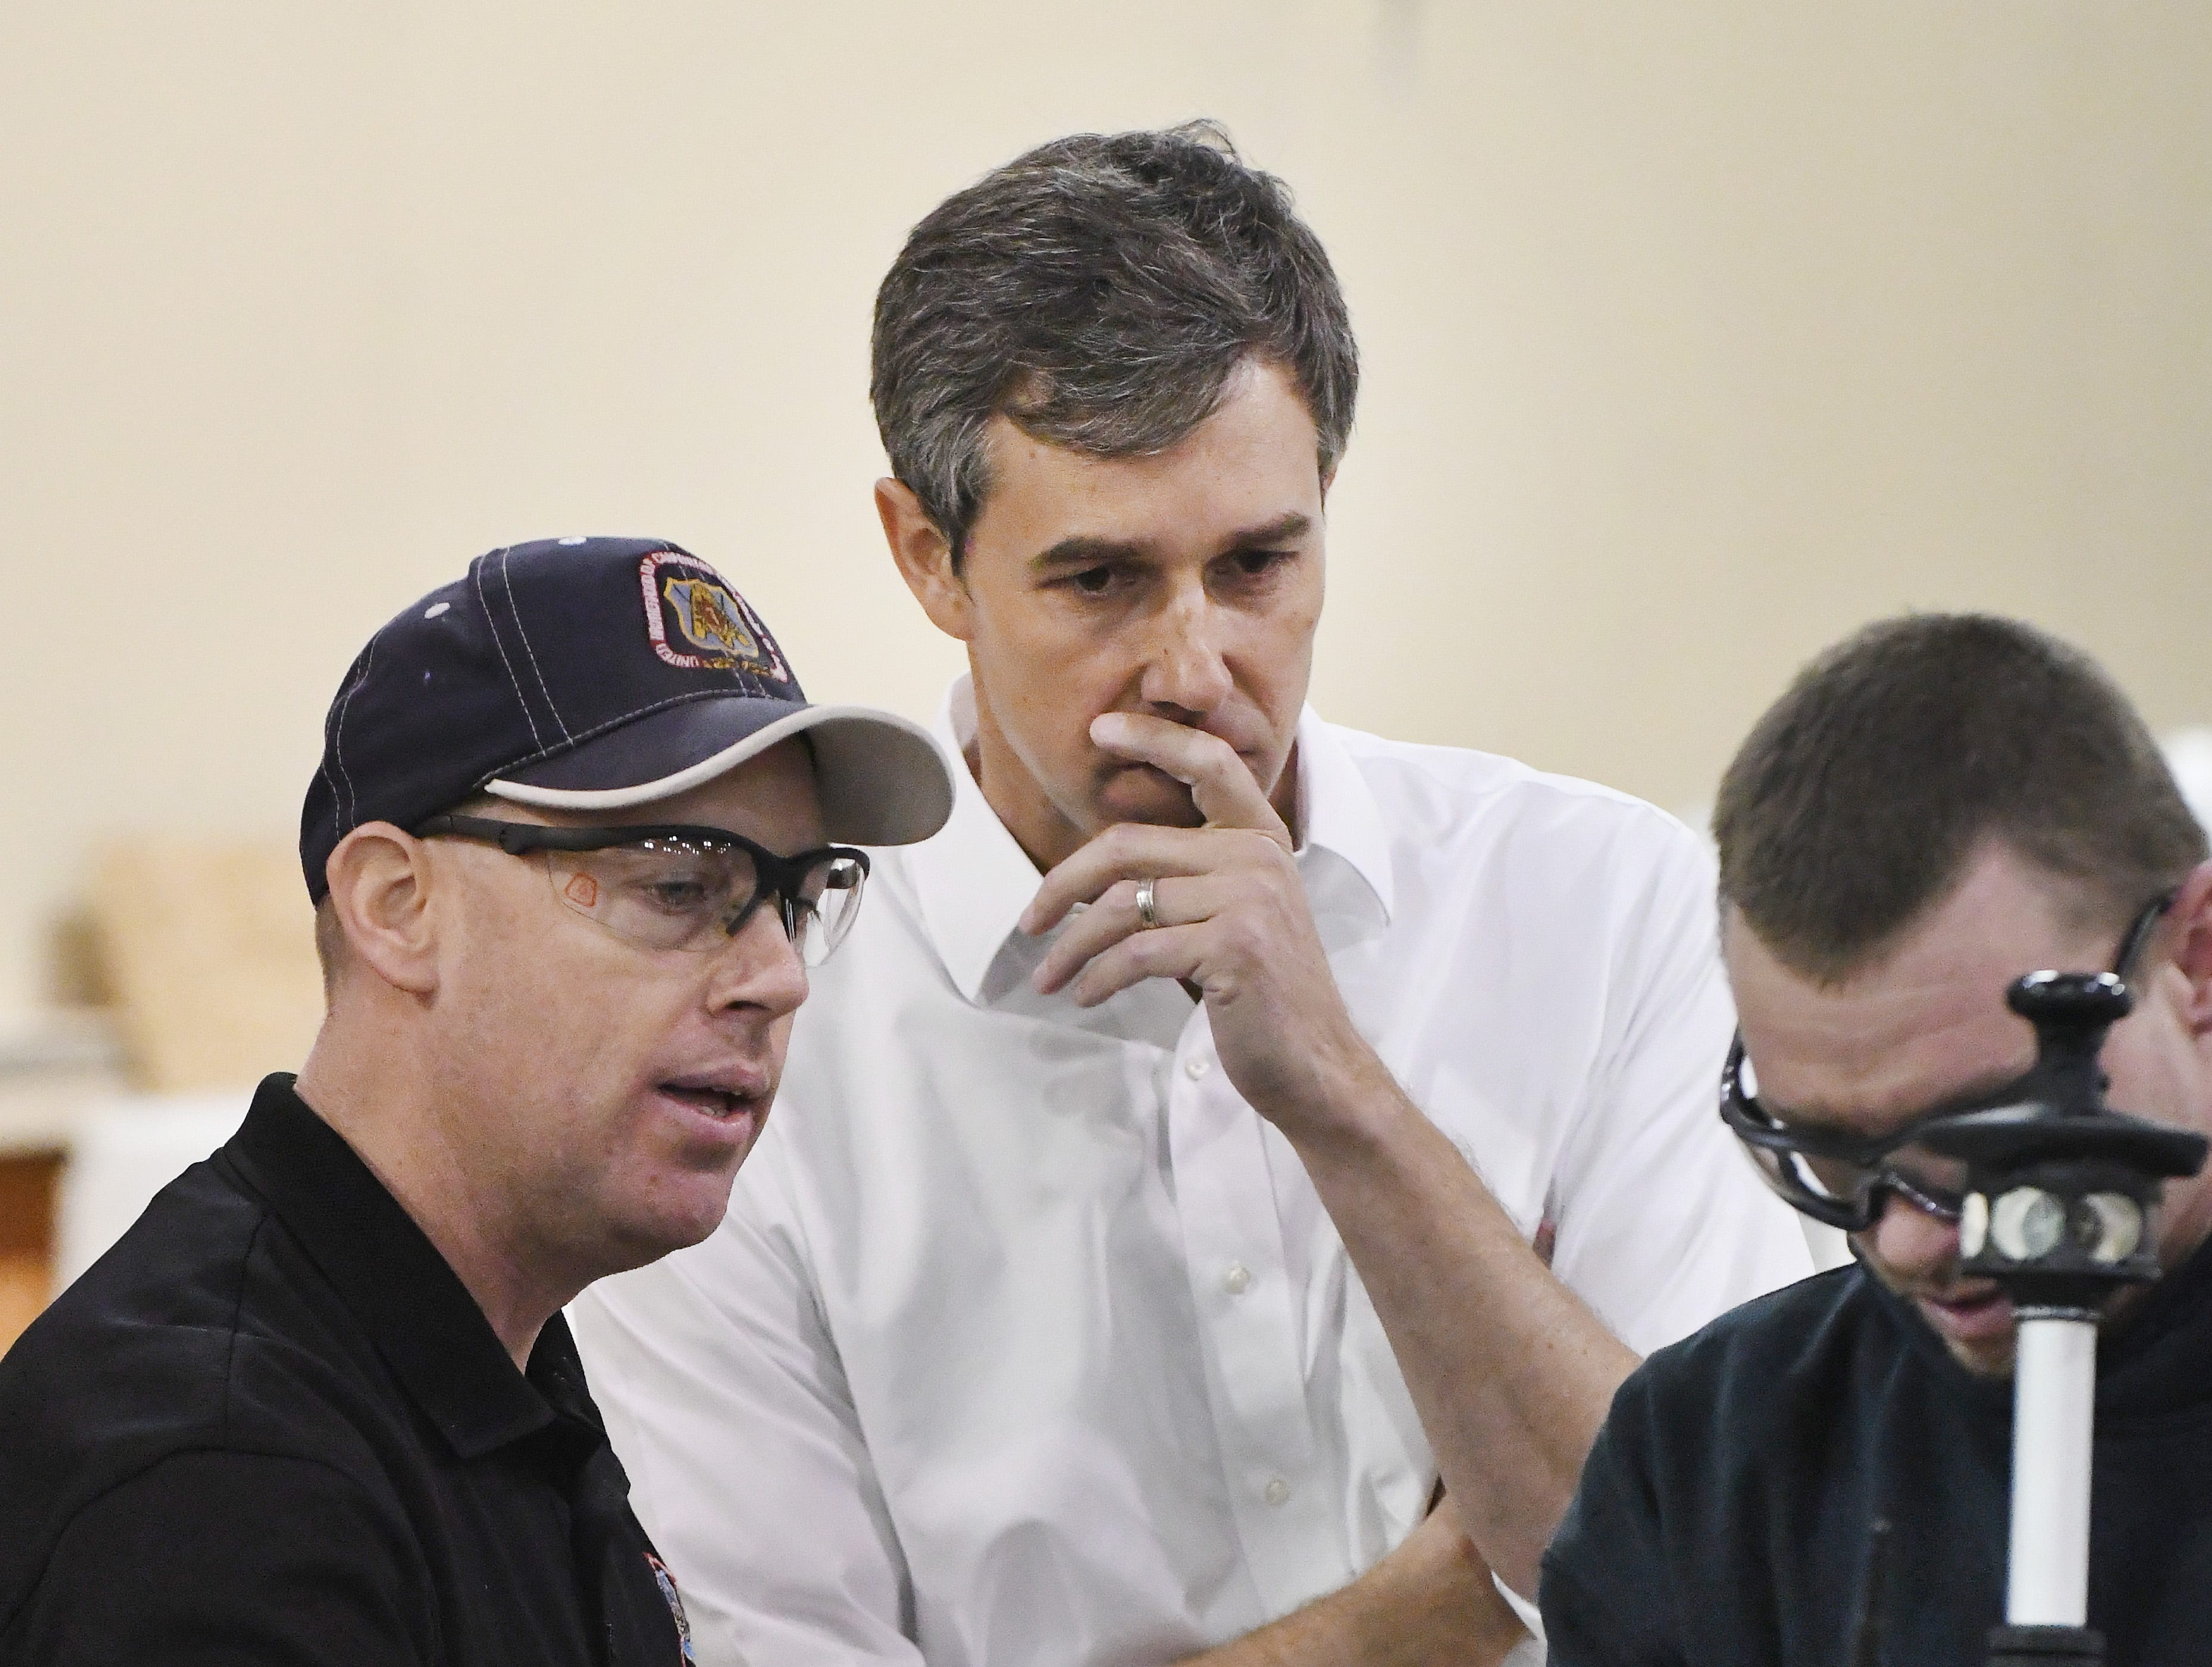 Instructor Andy Showers and student Josh Rice show Democratic U.S. presidential candidate Beto O'Rourke a carpentry device used in checking level during a tour of the Detroit Carpenters Training Center.